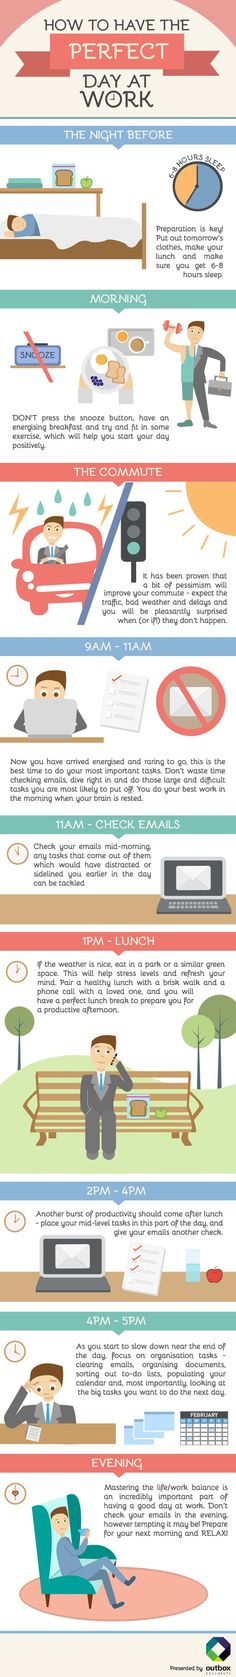 How to Have the Perfect Day at Work – Infographic with Tips